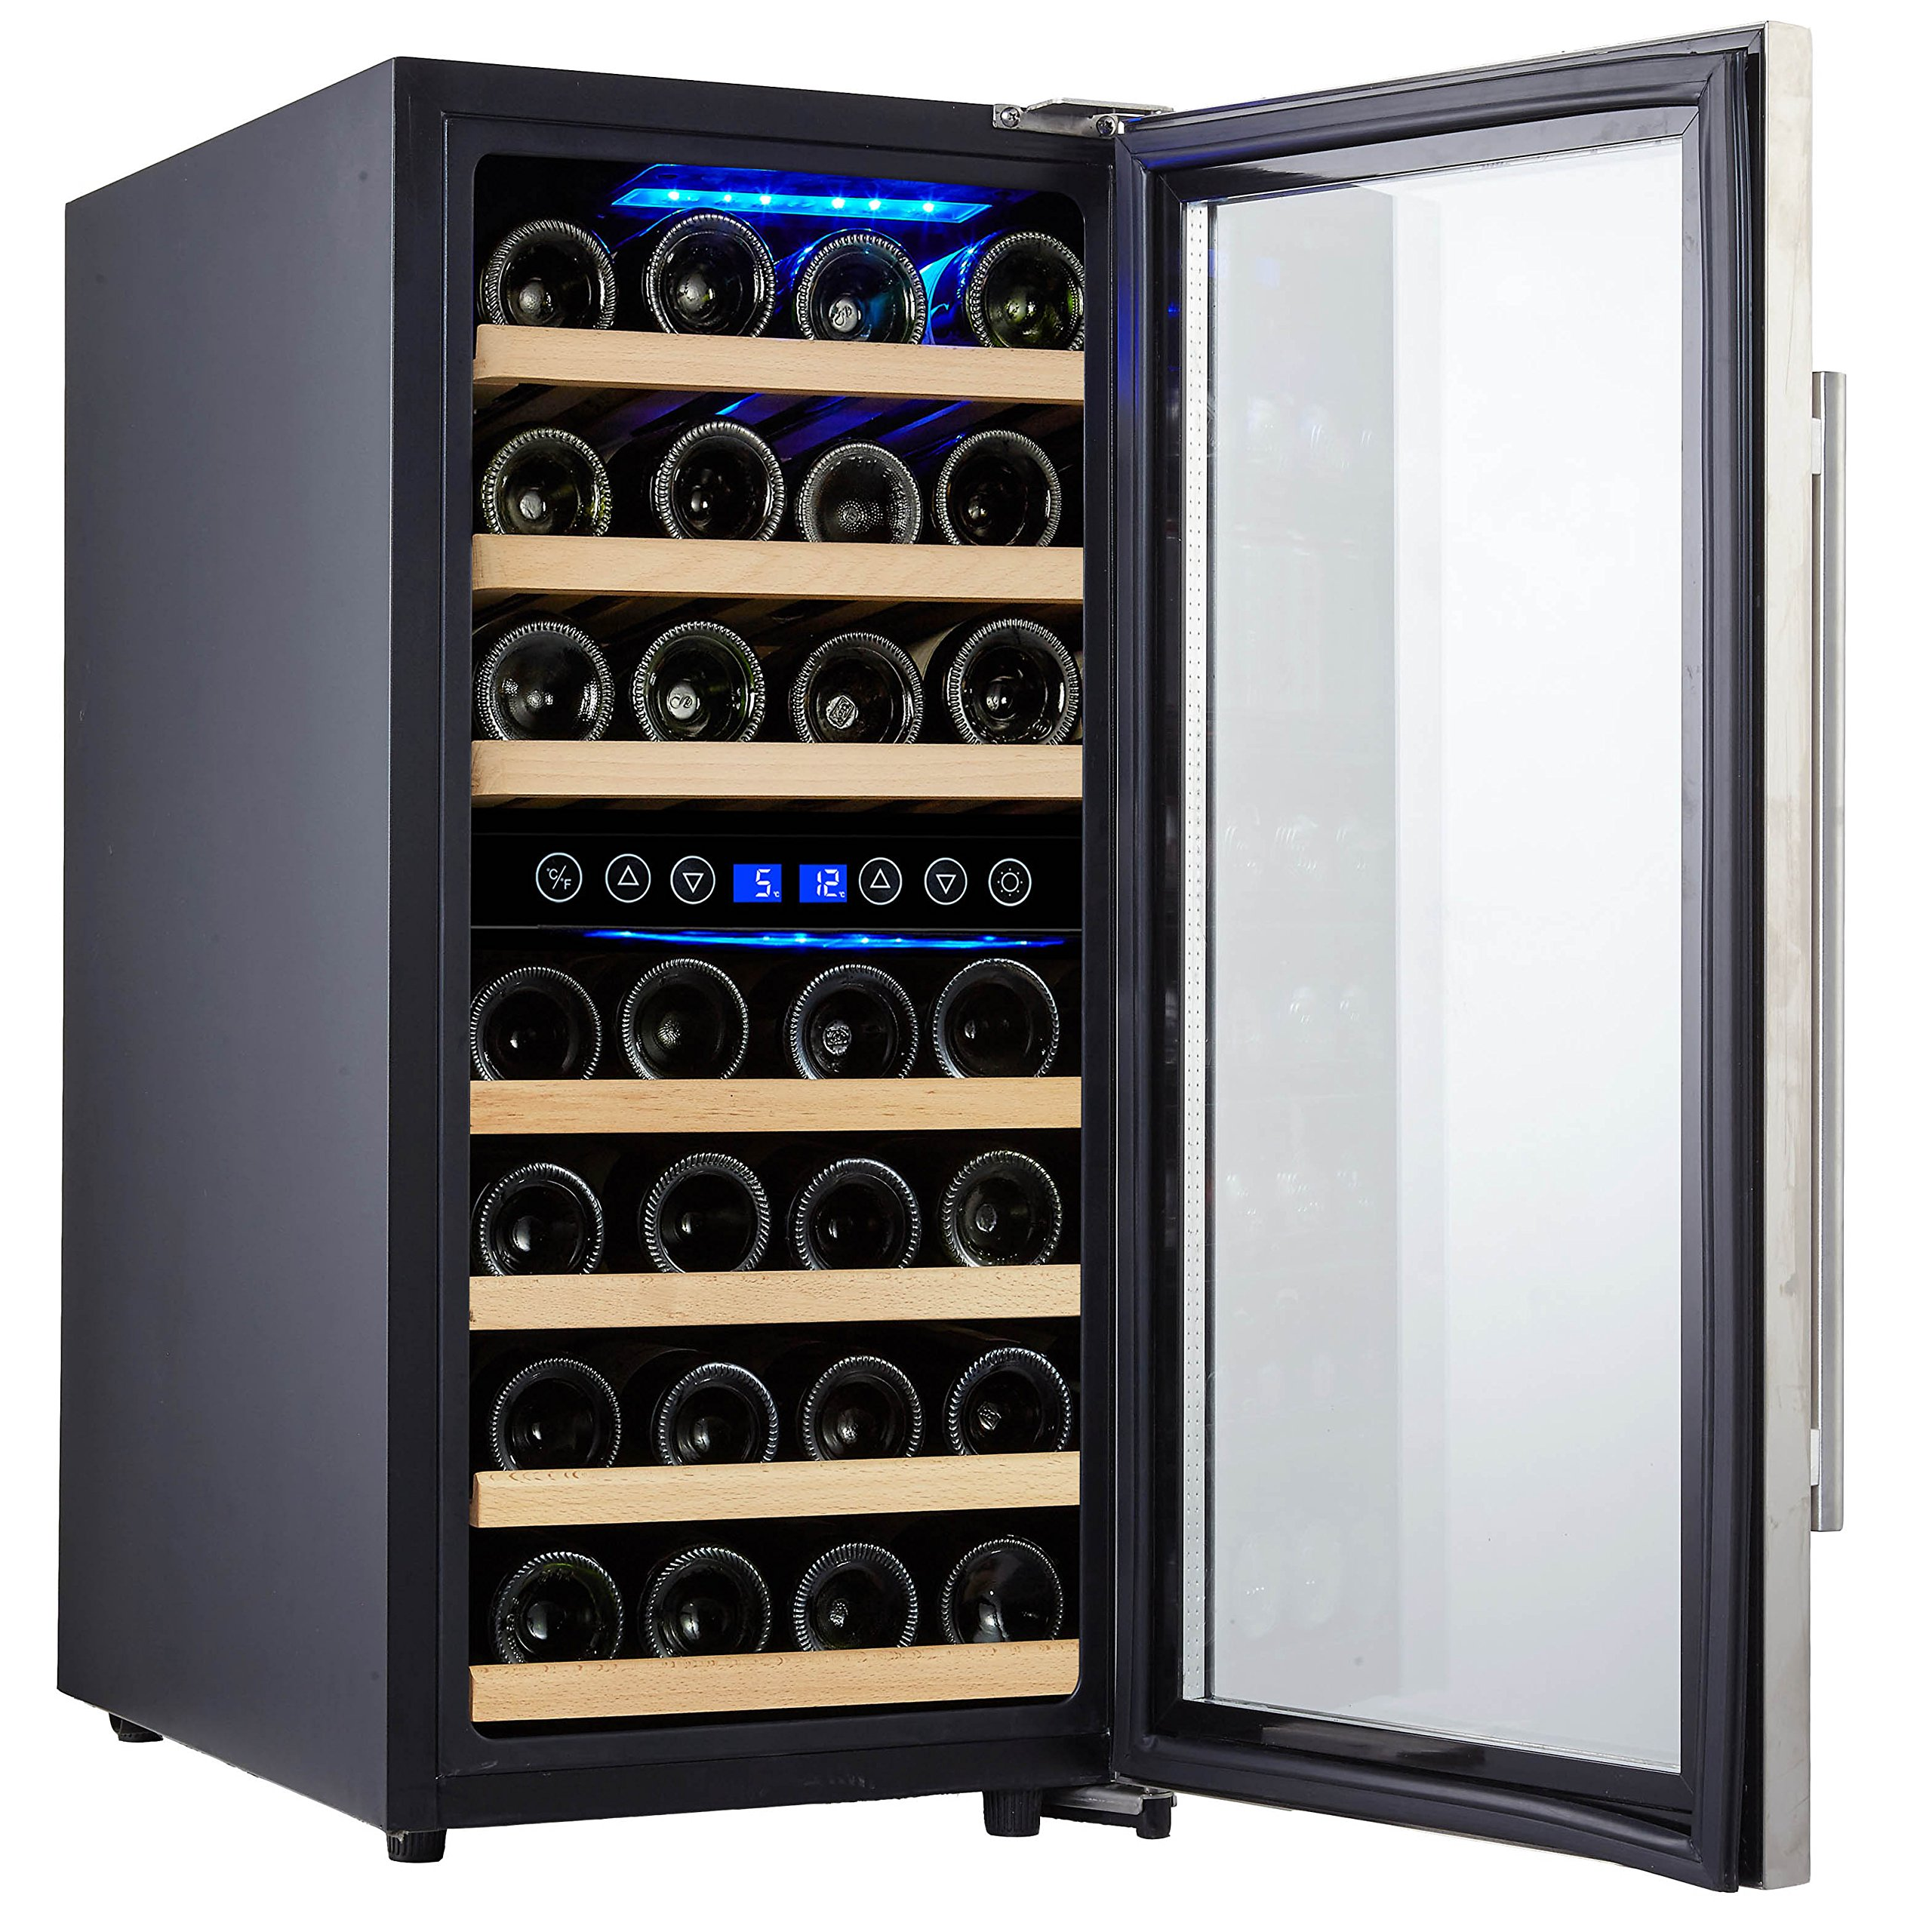 Phiestina 33 Bottle Wine Cooler Double Zone Steel Door with Handle by phiestina (Image #2)